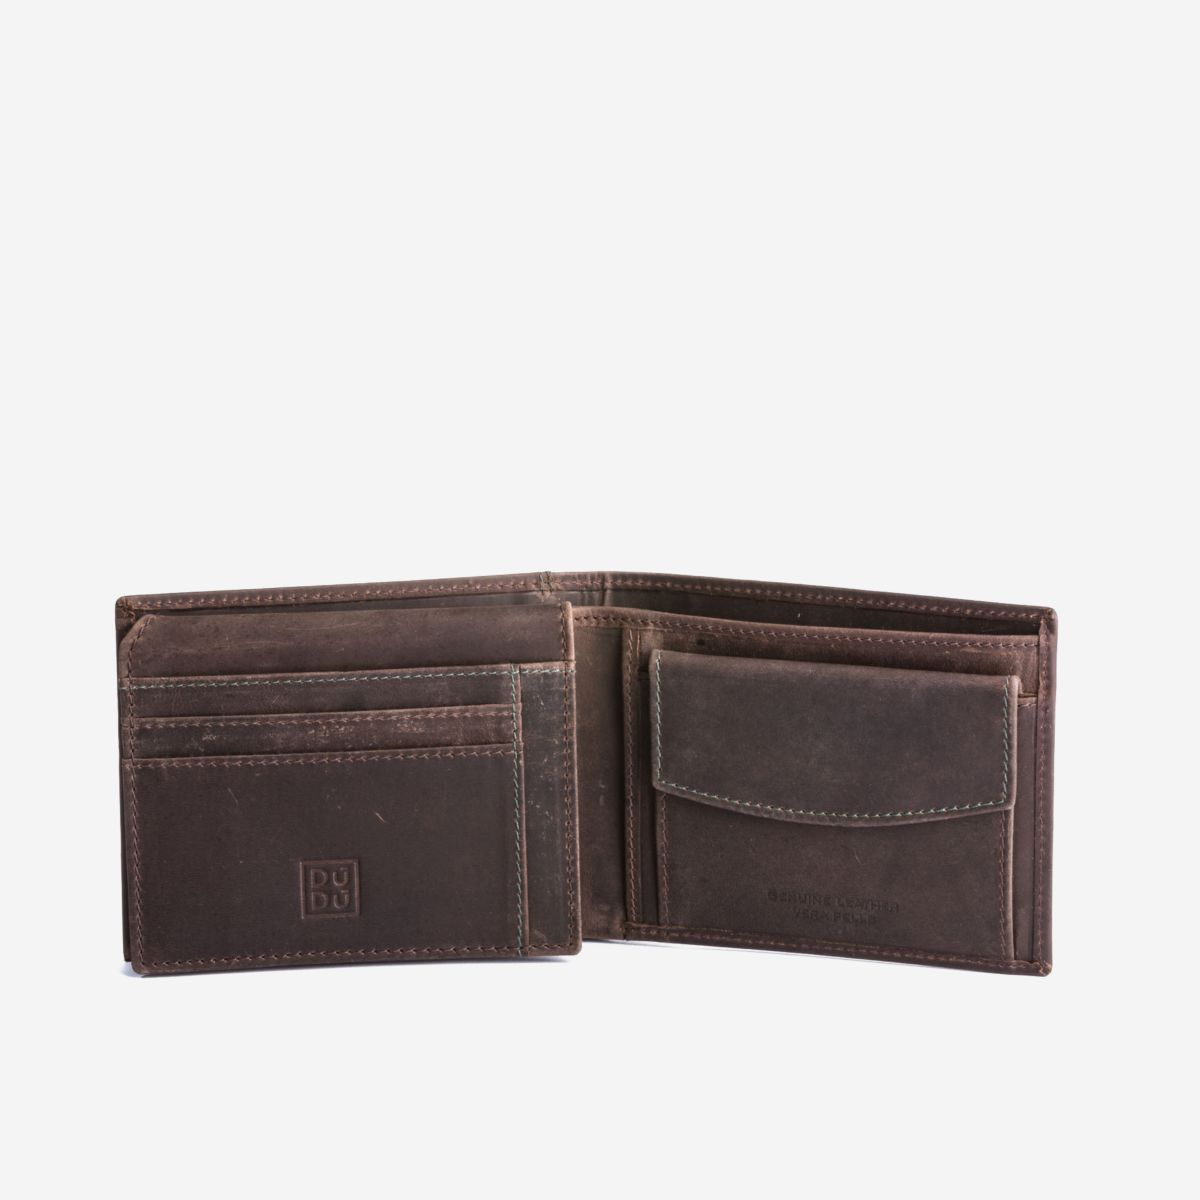 DuDu Classic Mans Billfold Wallet with Coin Pocket - Dark Brown